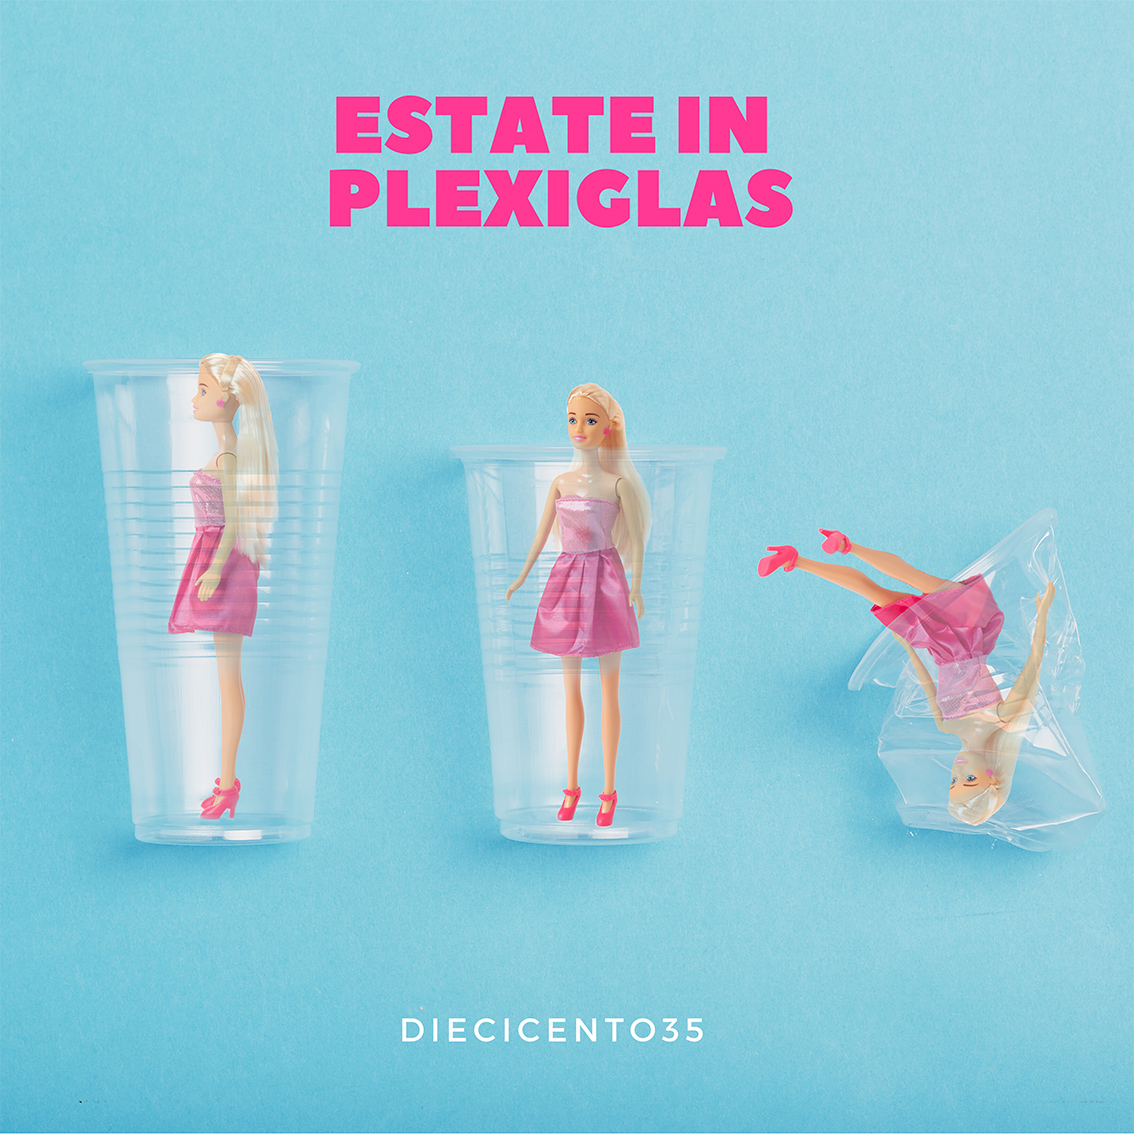 diecicento35 estate in plexiglass cover